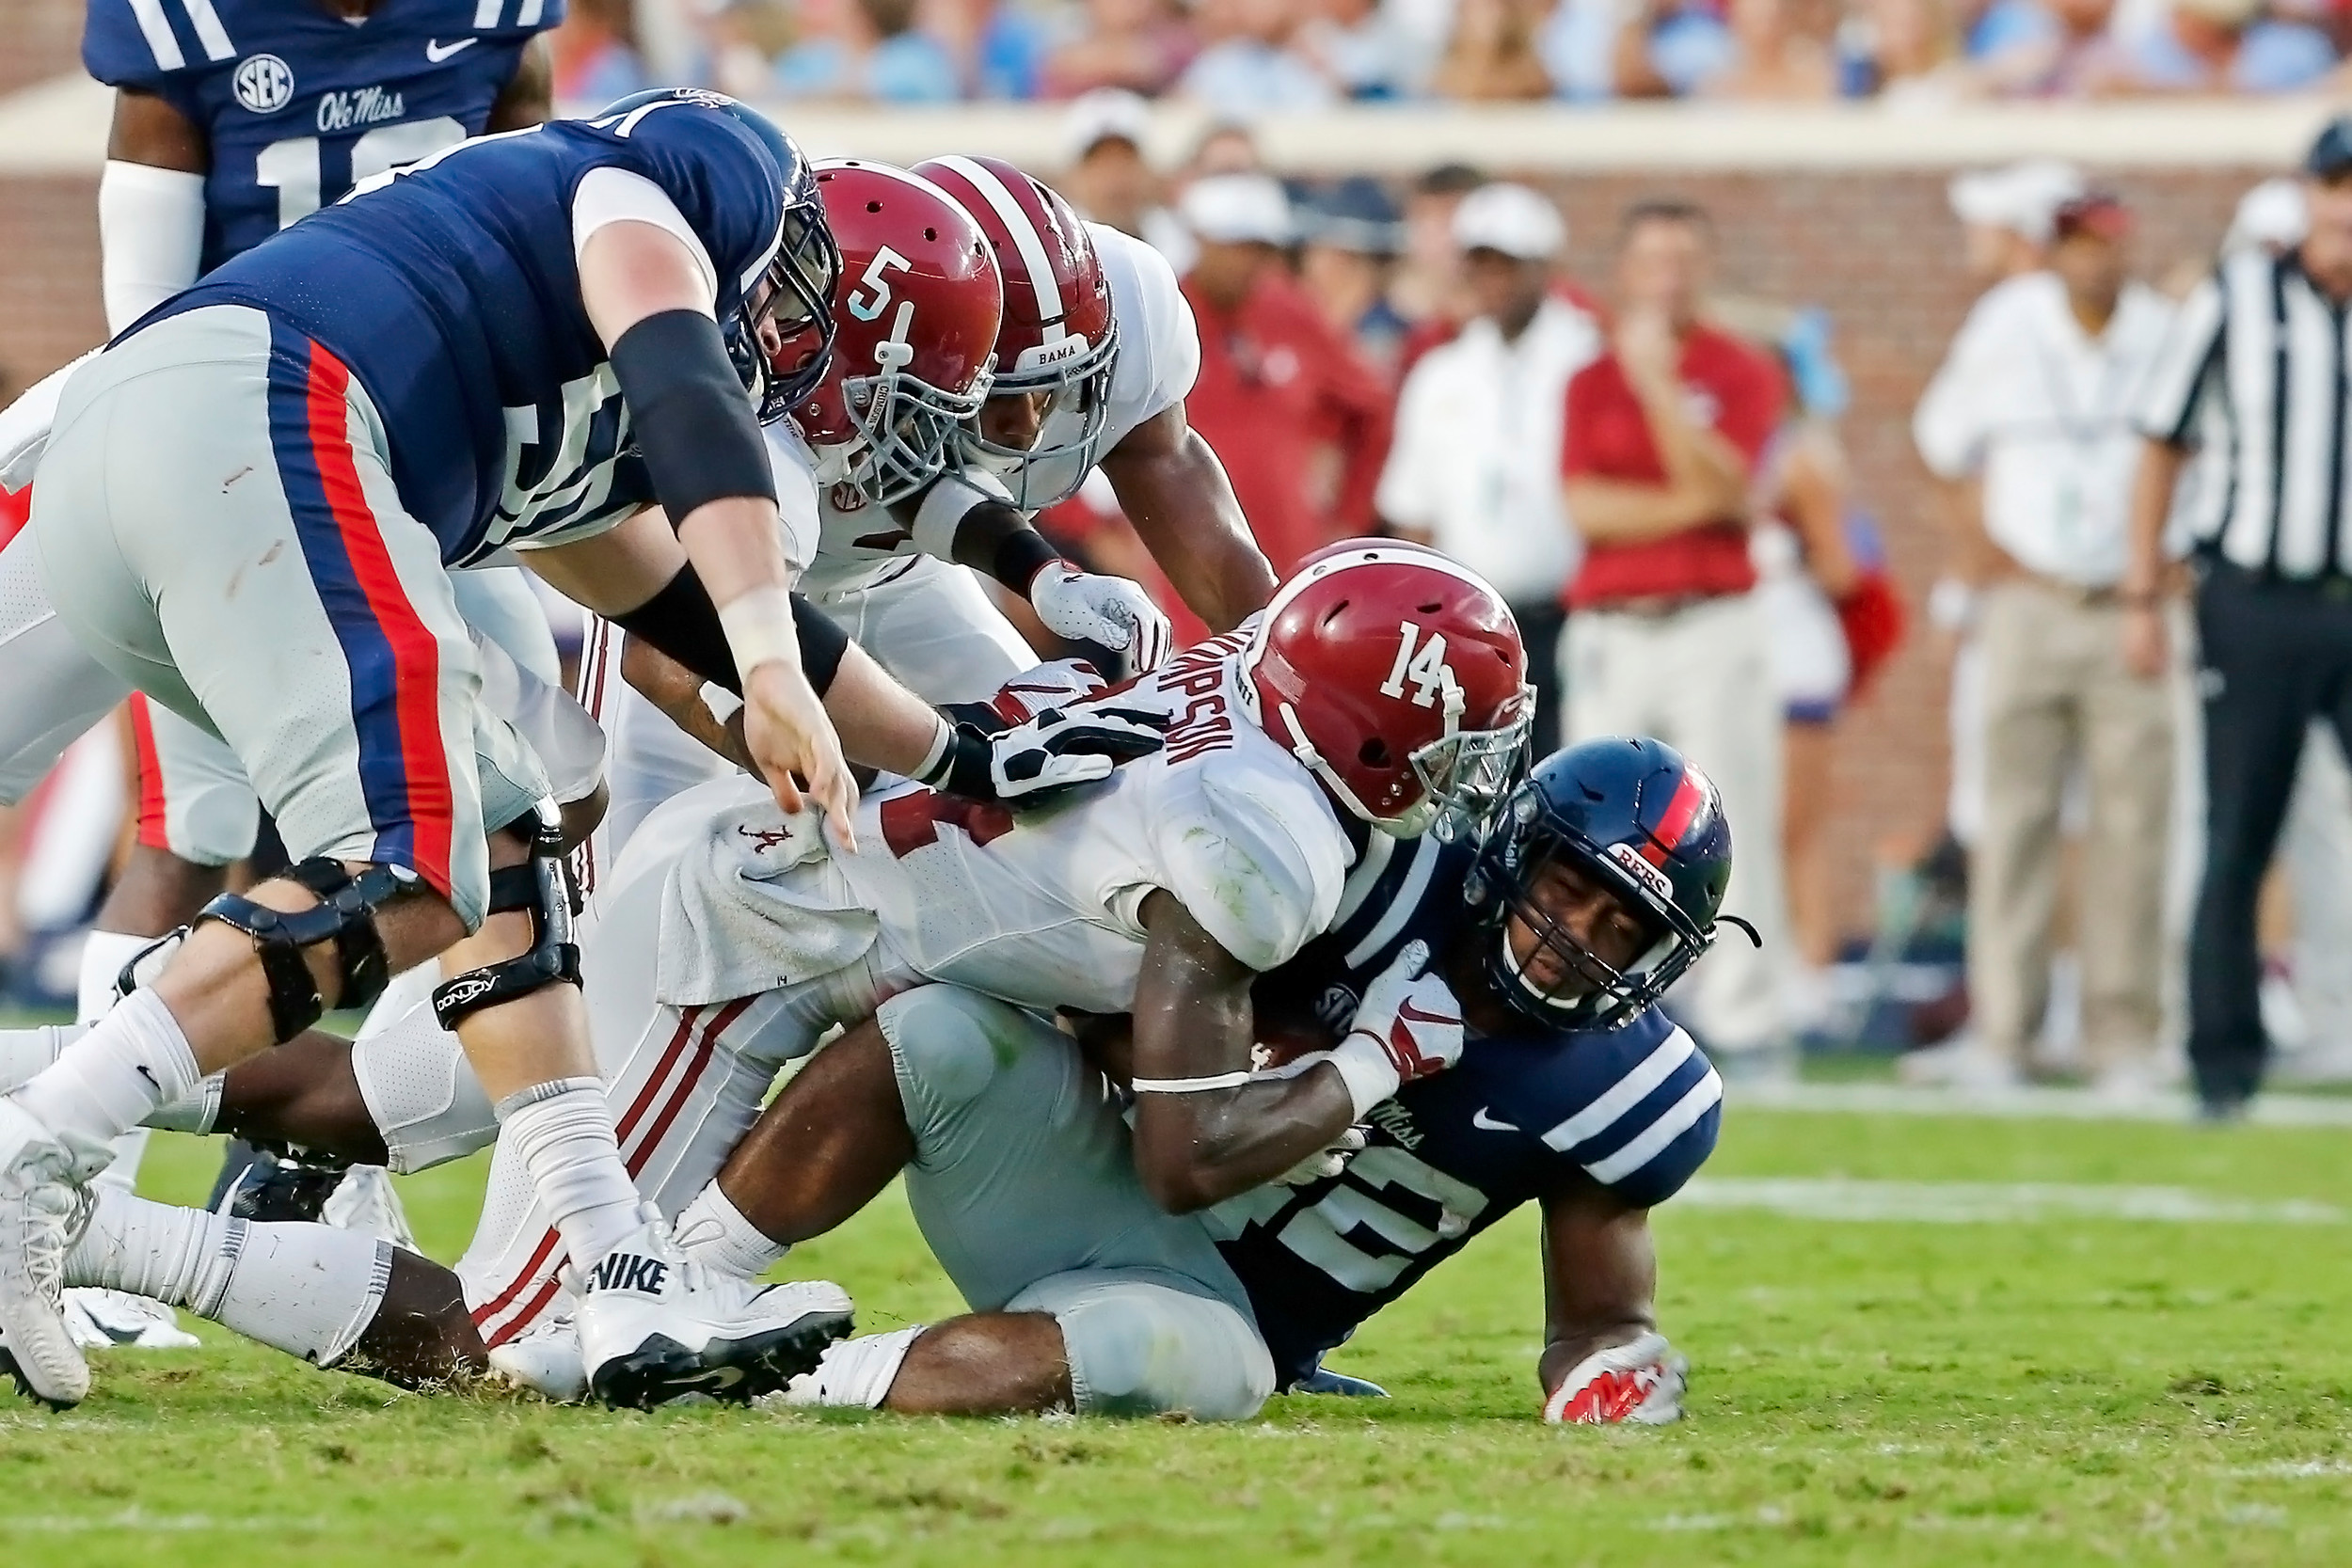 Alabama Crimson Tide defensive back Deionte Thompson (14) tackles Mississippi Rebels running back Scottie Phillips (22) during the game between the University of Alabama and Ole Miss at Vaught-Hemingway Stadium. Jason Clark / Daily Mountain Eagle